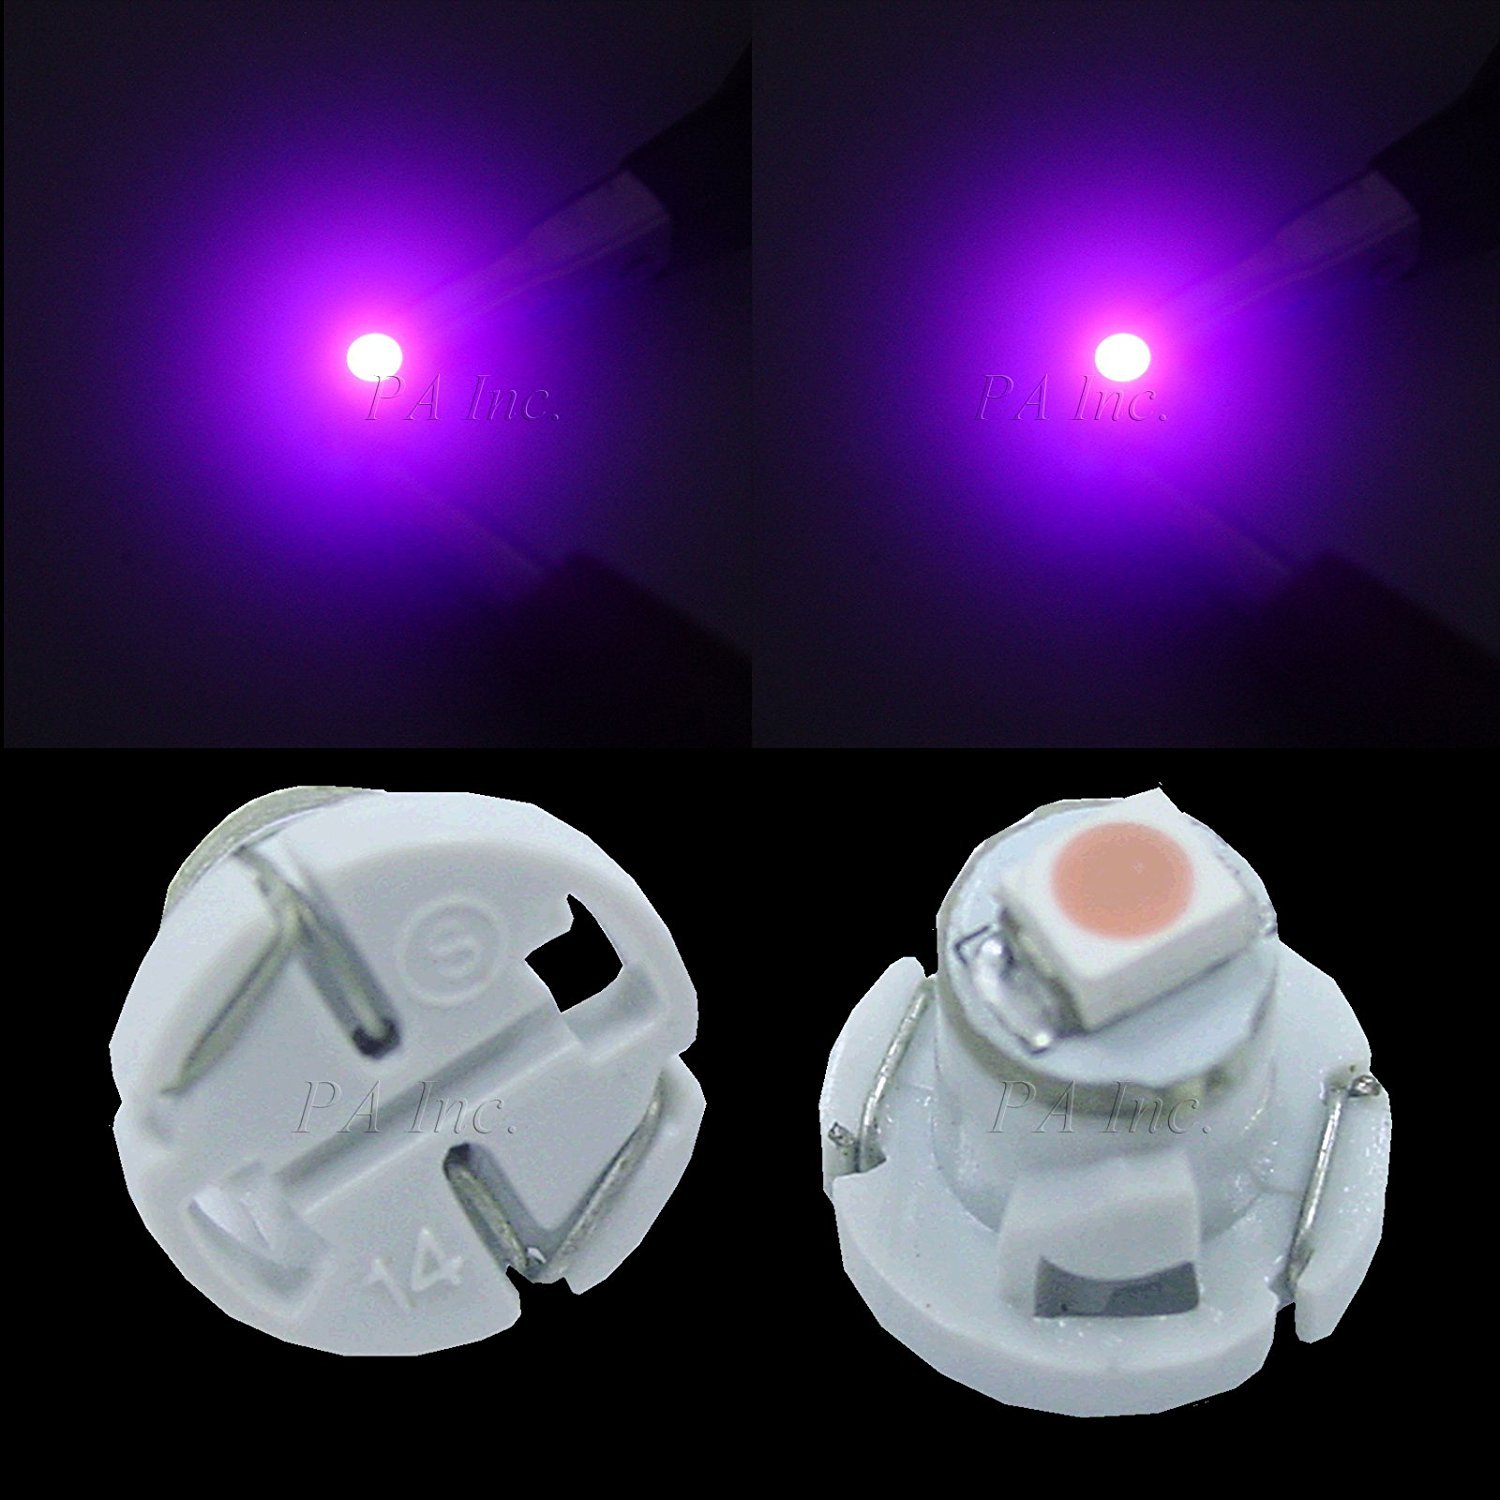 PA 20pcs T4.2 Car Dash Board Instrument LED Bulbs 5 color options 12v (White) Per-Accurate Inc. All brands after market